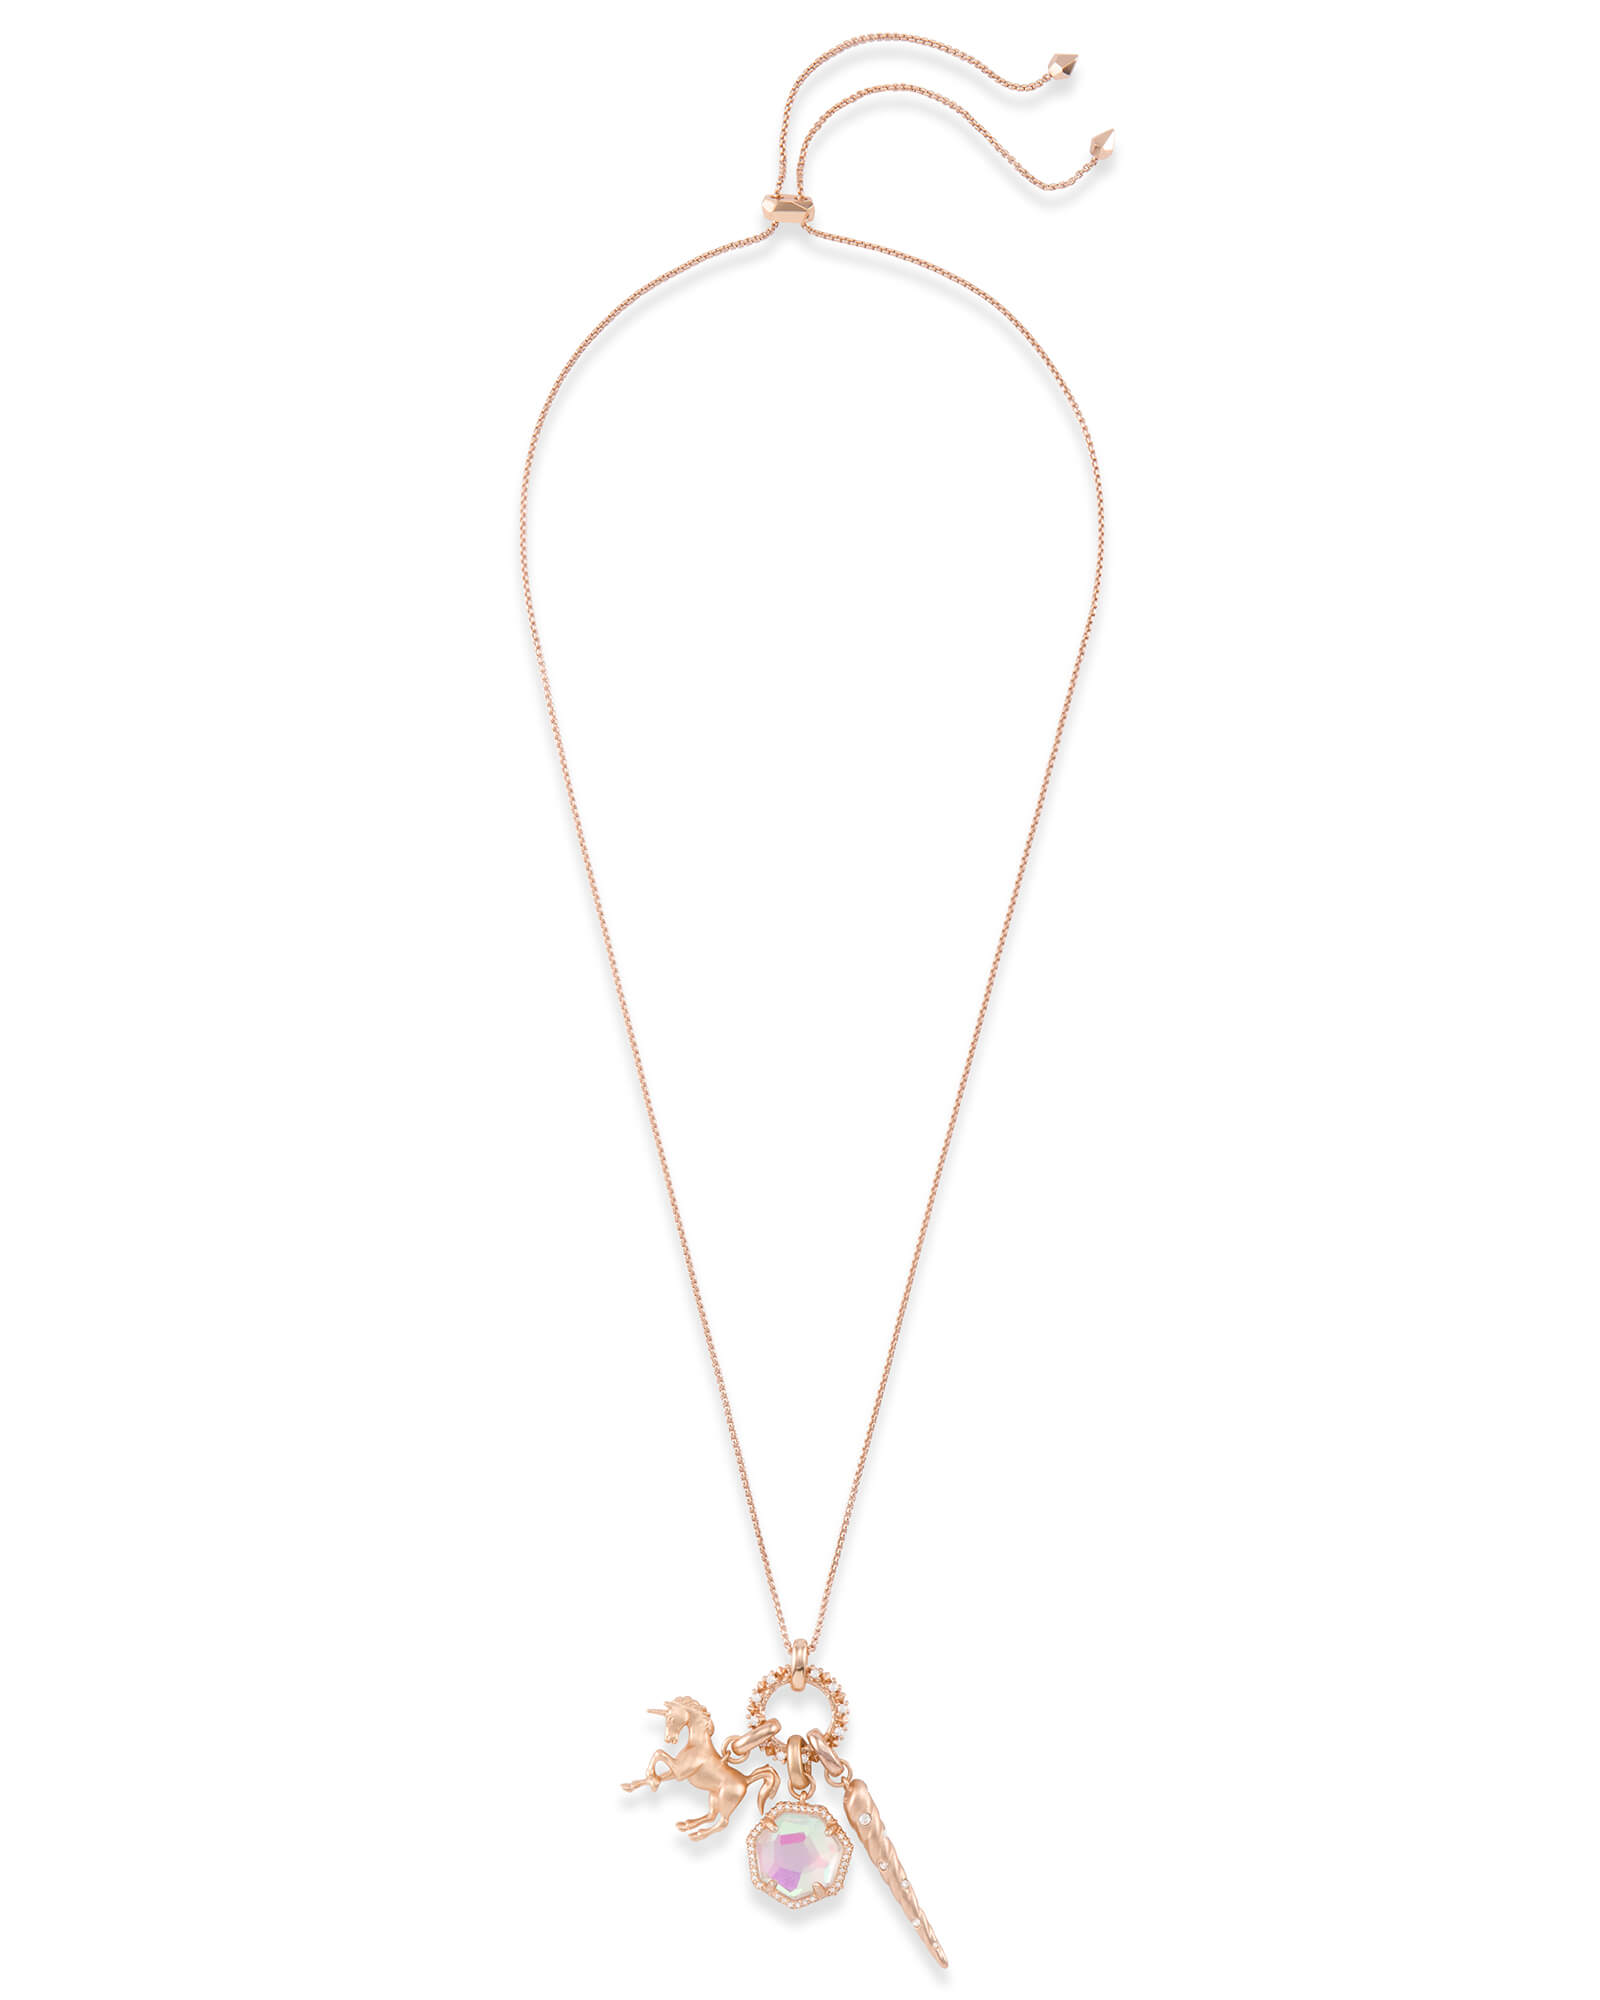 Magical Charm Necklace Set in Rose Gold